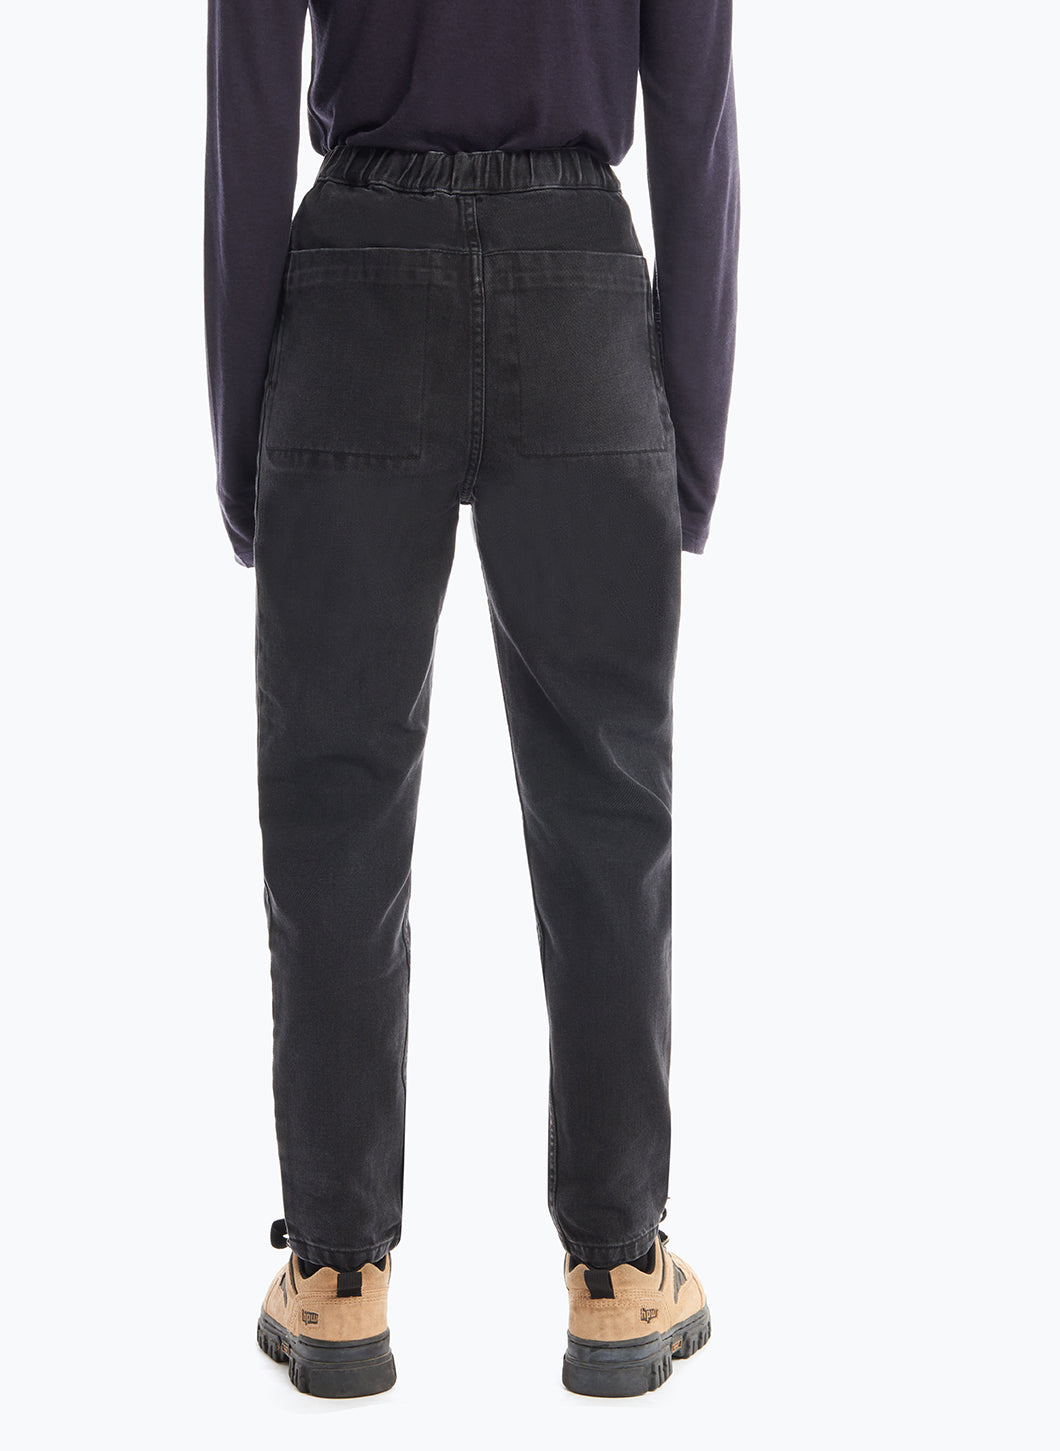 5-Pocket Pants with Front Cuts in Black Denim